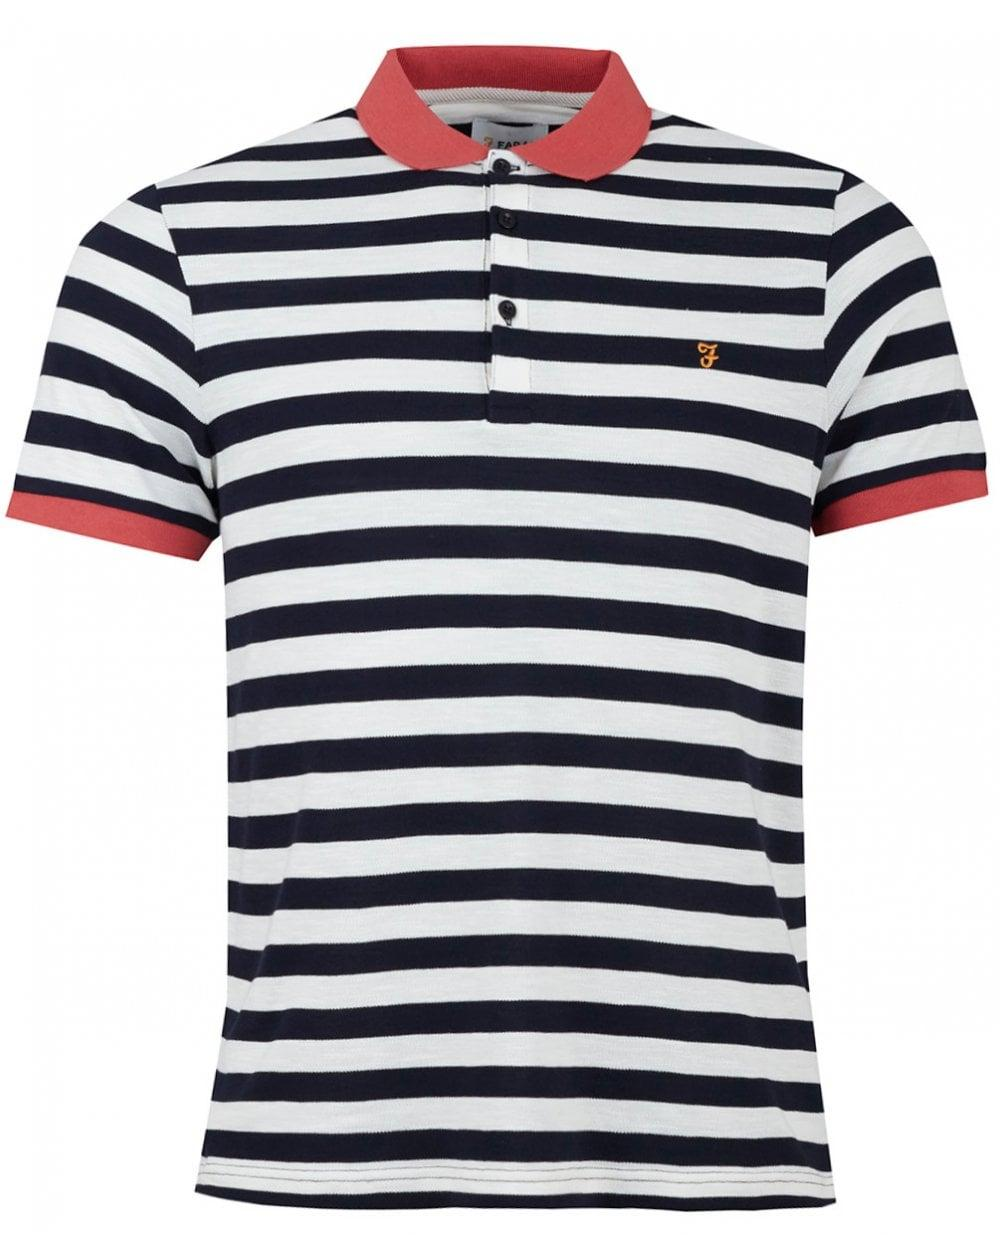 5d86a19be3 Farah Witton Short Sleeved Striped Polo Shirt in Blue for Men - Lyst